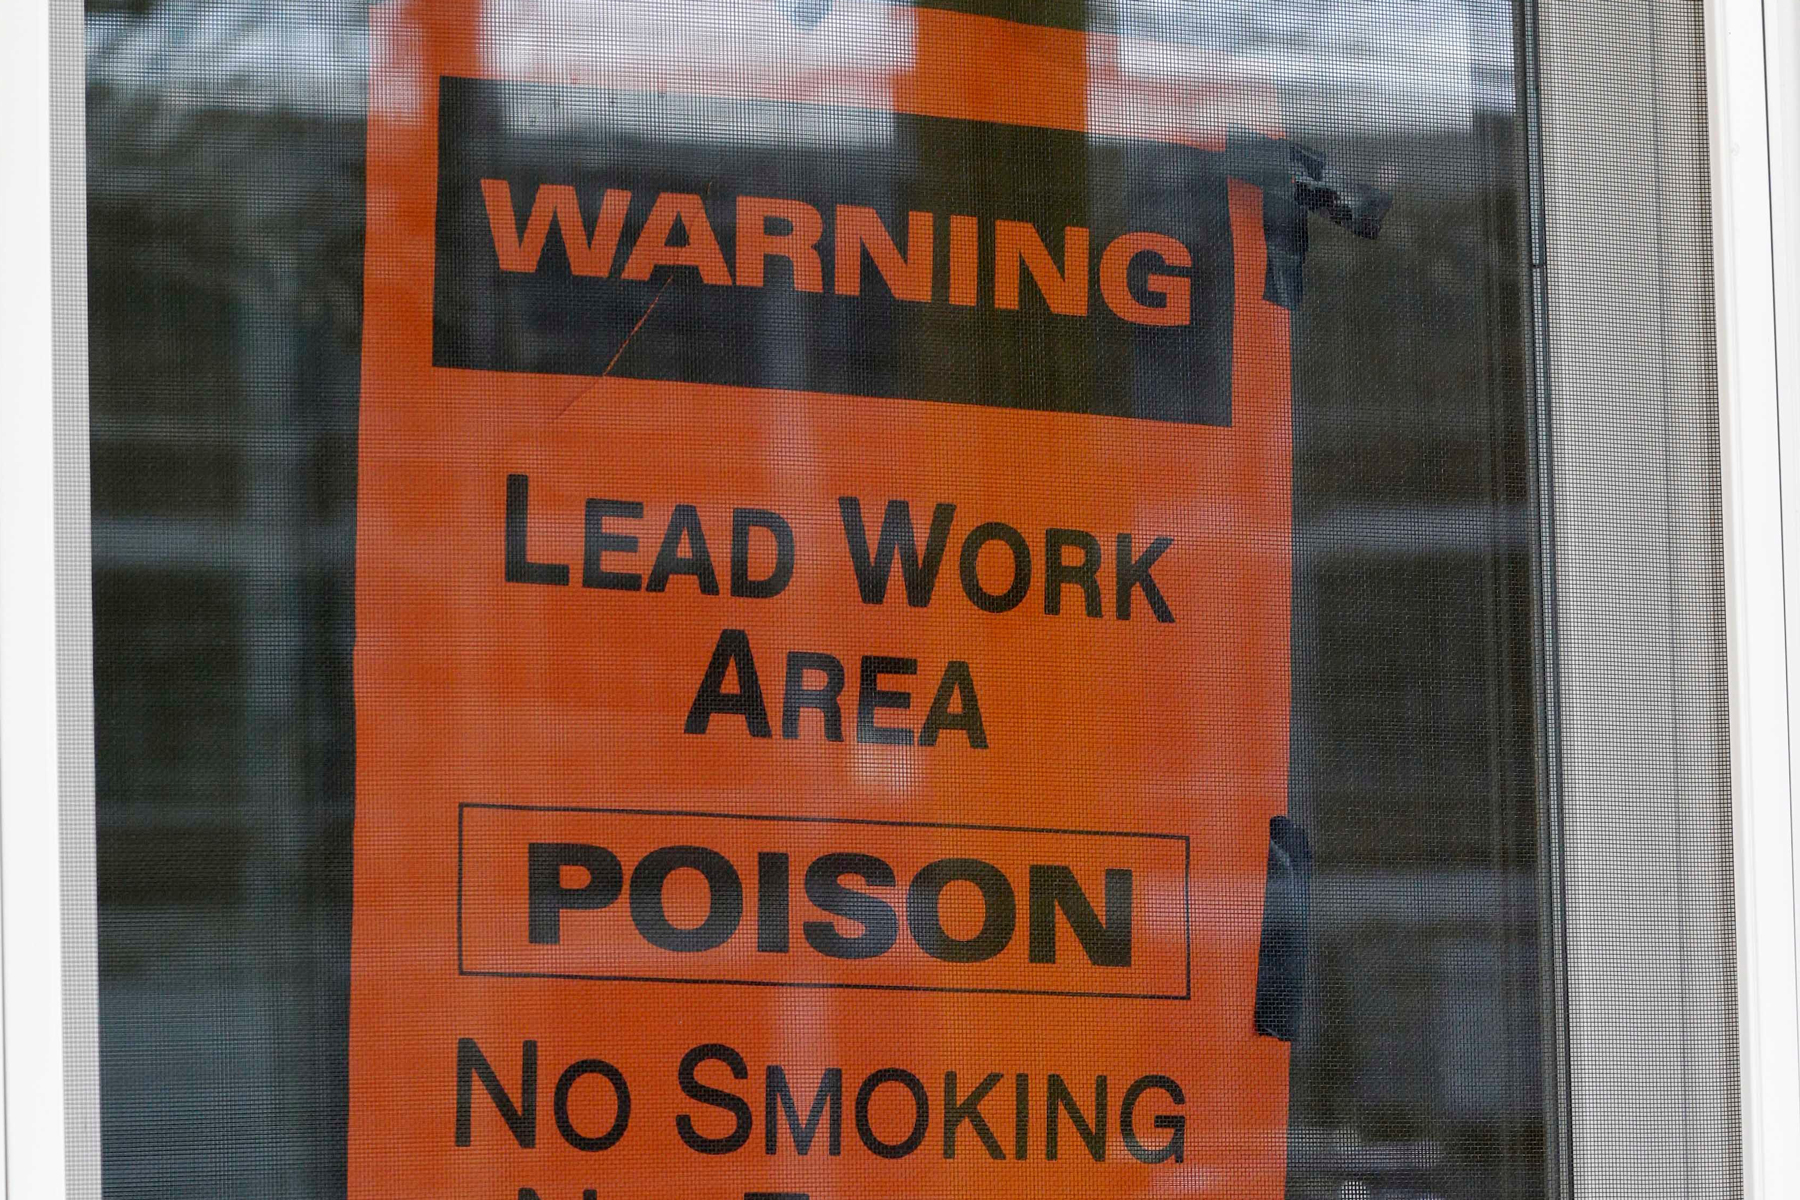 A sign hangs in a window, in Lakewood, Ohio. More than half a million U.S. children are now believed to have lead poisoning, roughly twice the previous high estimate, health officials reported Thursday. The increase is the result of the government last year lowering the threshold for lead poisoning, so now more children are considered at riskLead Poisoning, Lakewood, USA